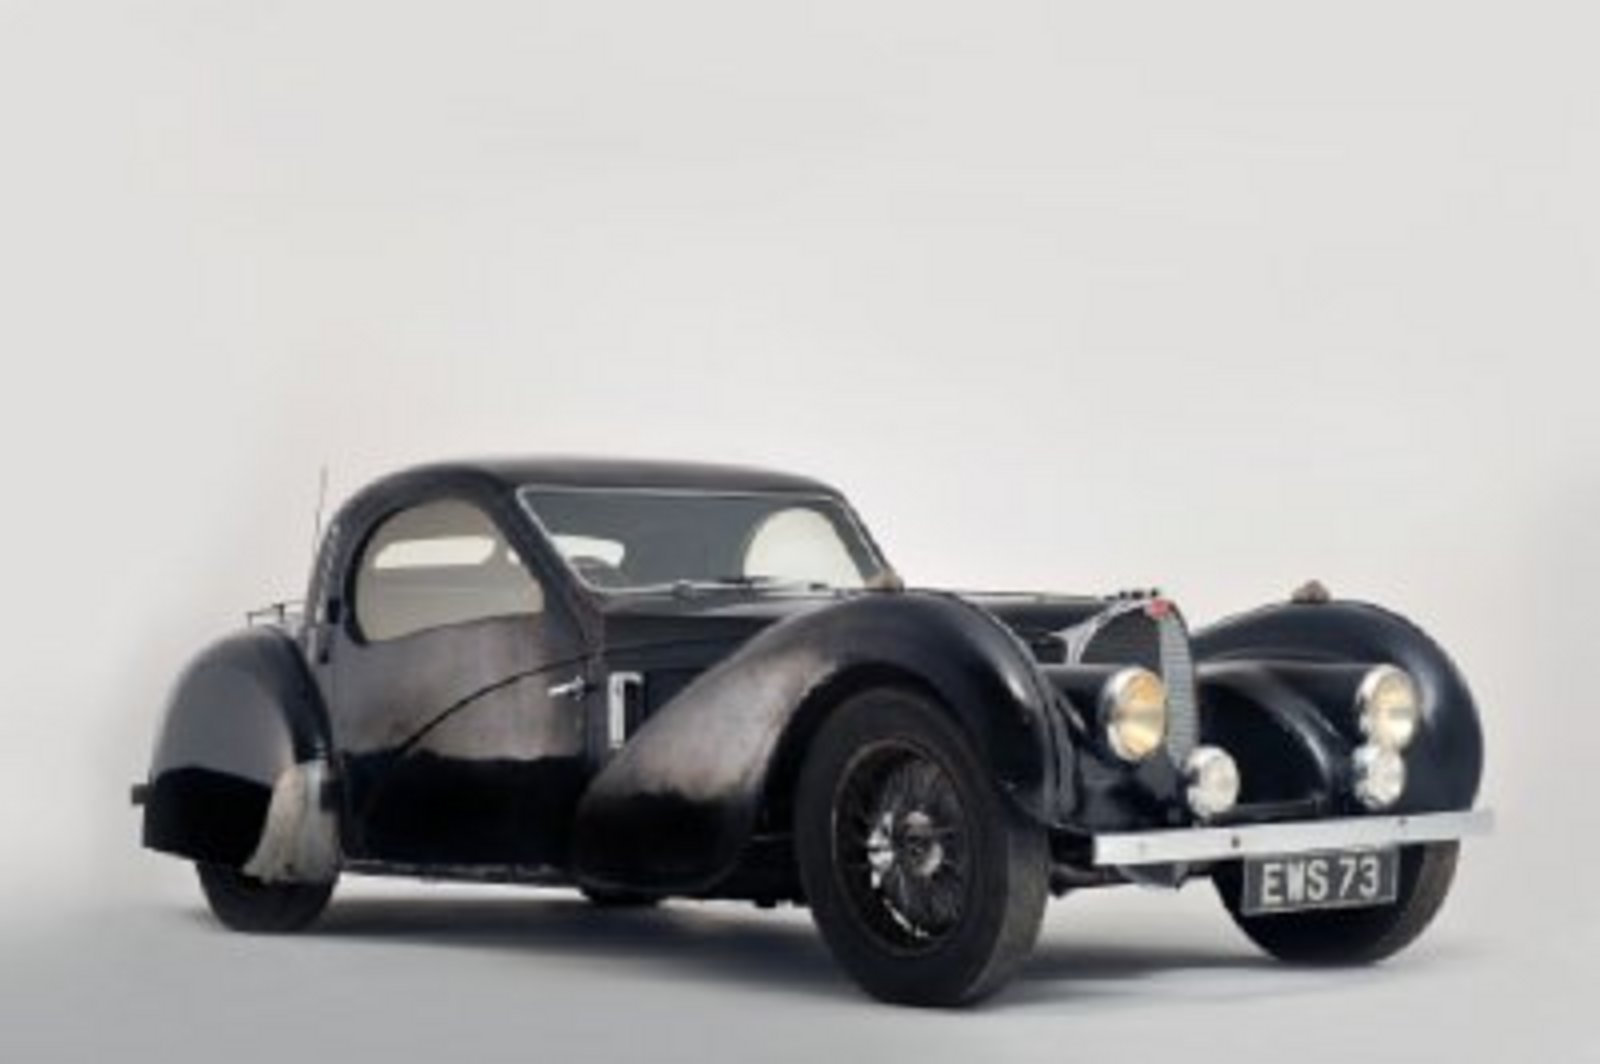 Ultra-rare Bugatti Barn Find Going Up For Auction News